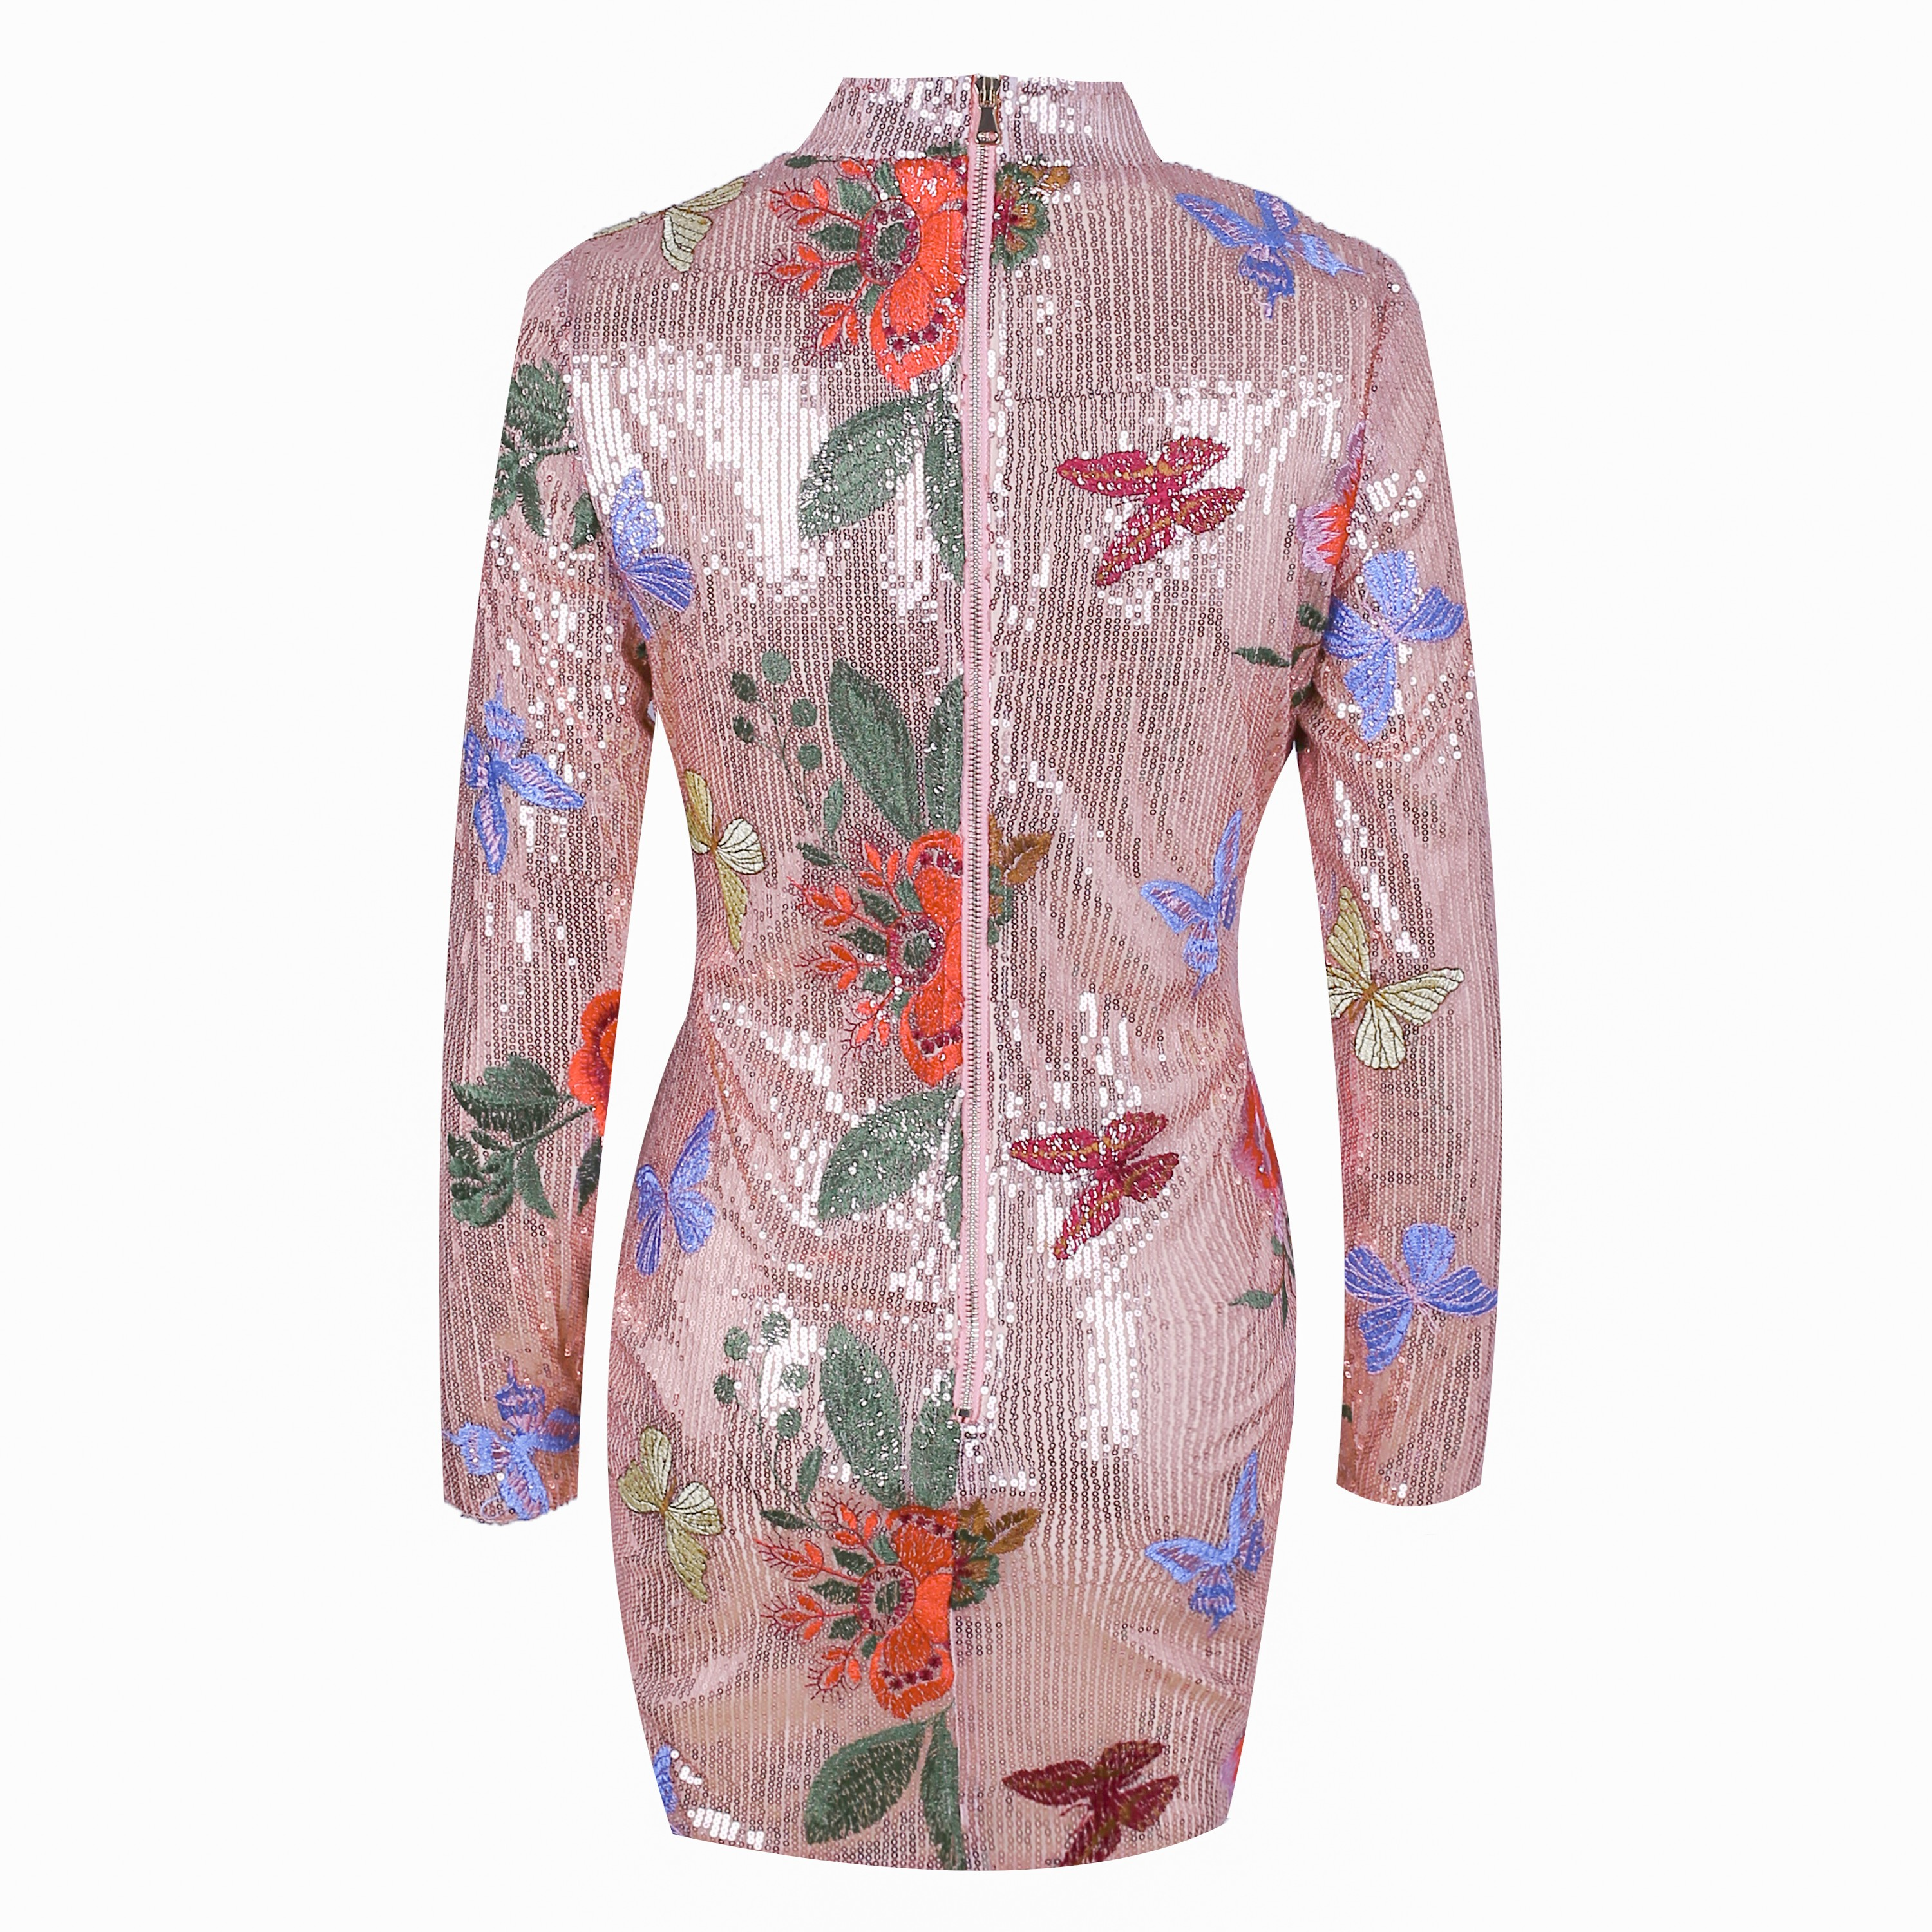 Gold High Neck Long Sleeve Mini Flower Decorated Sexy Bodycon Dress HW239-Gold